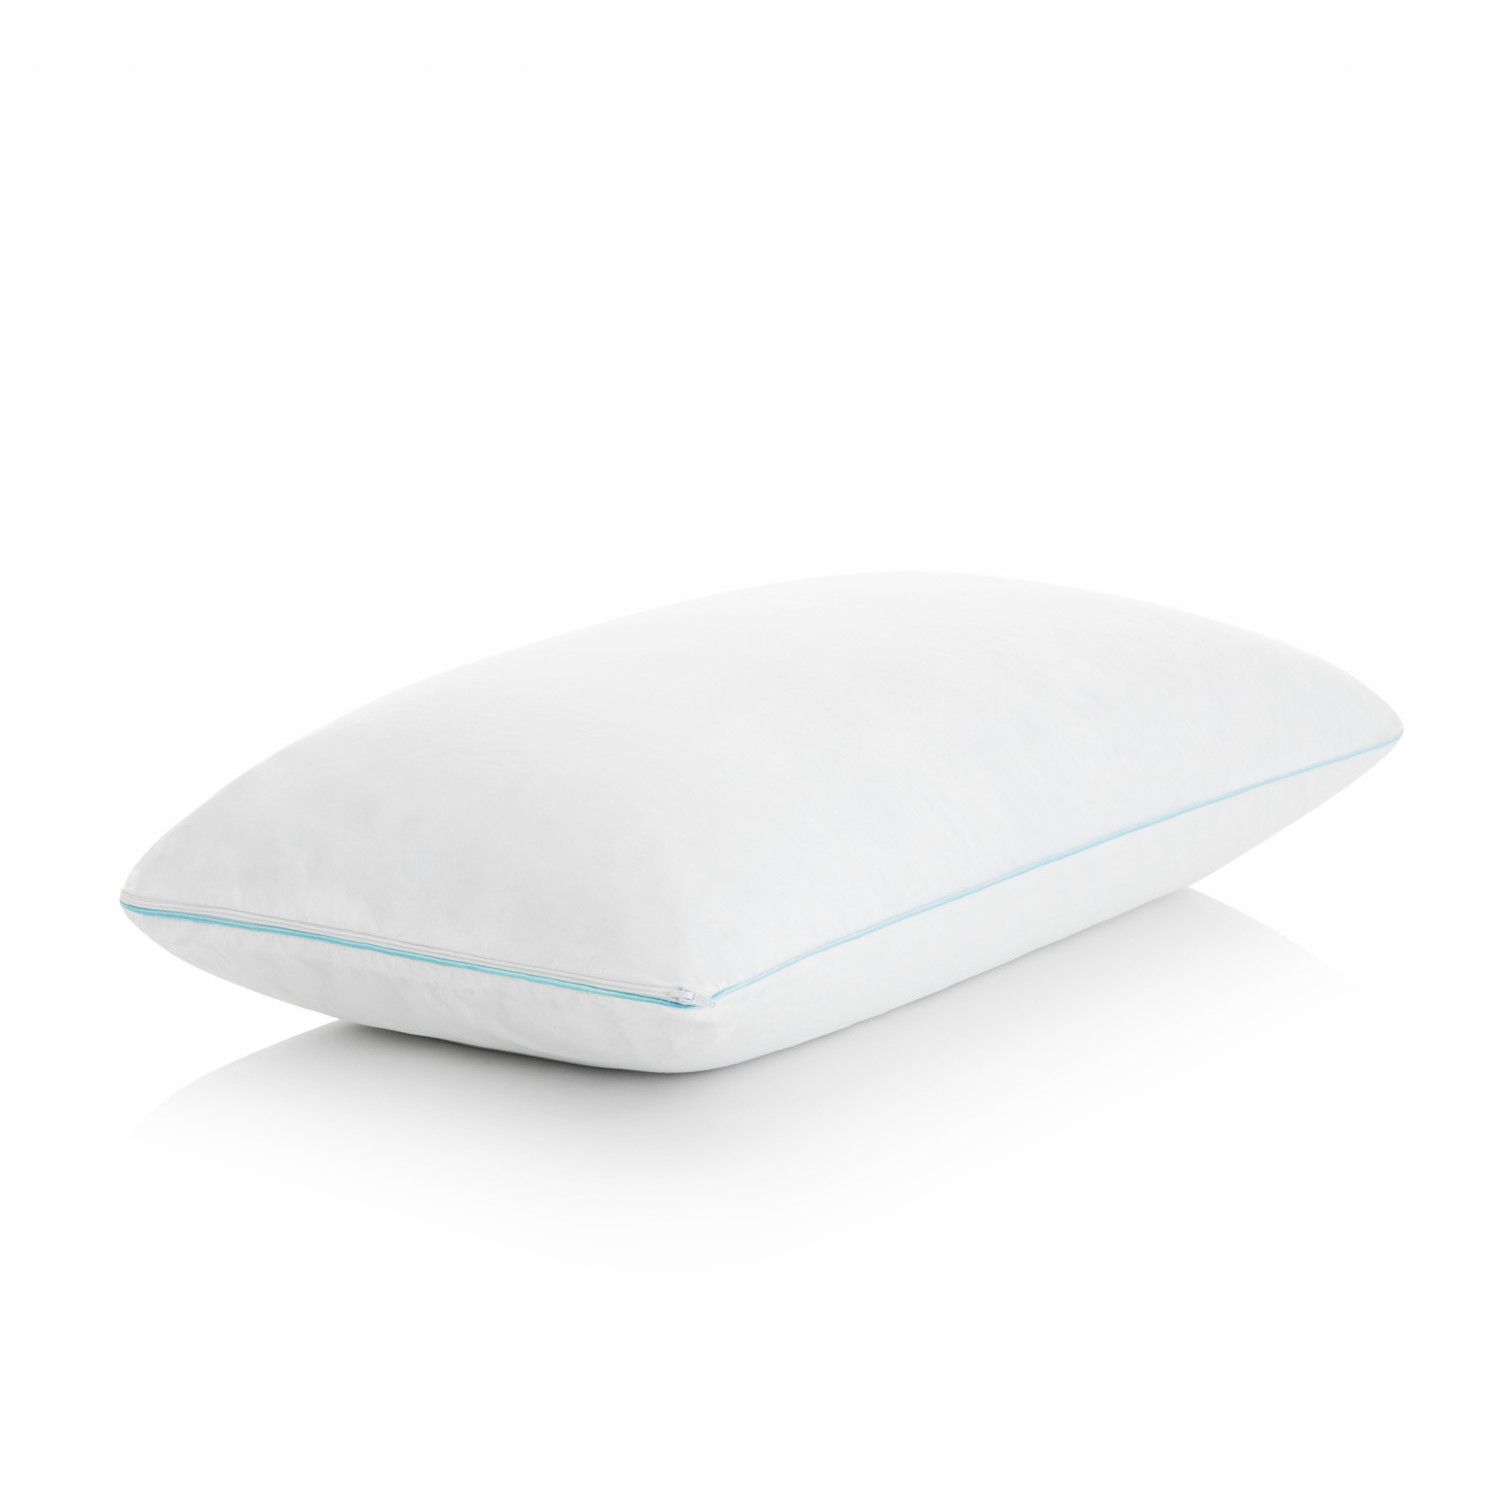 Firm Memory Foam Pillow Shredded Memory Foam Pillow With Gel Memory Foam